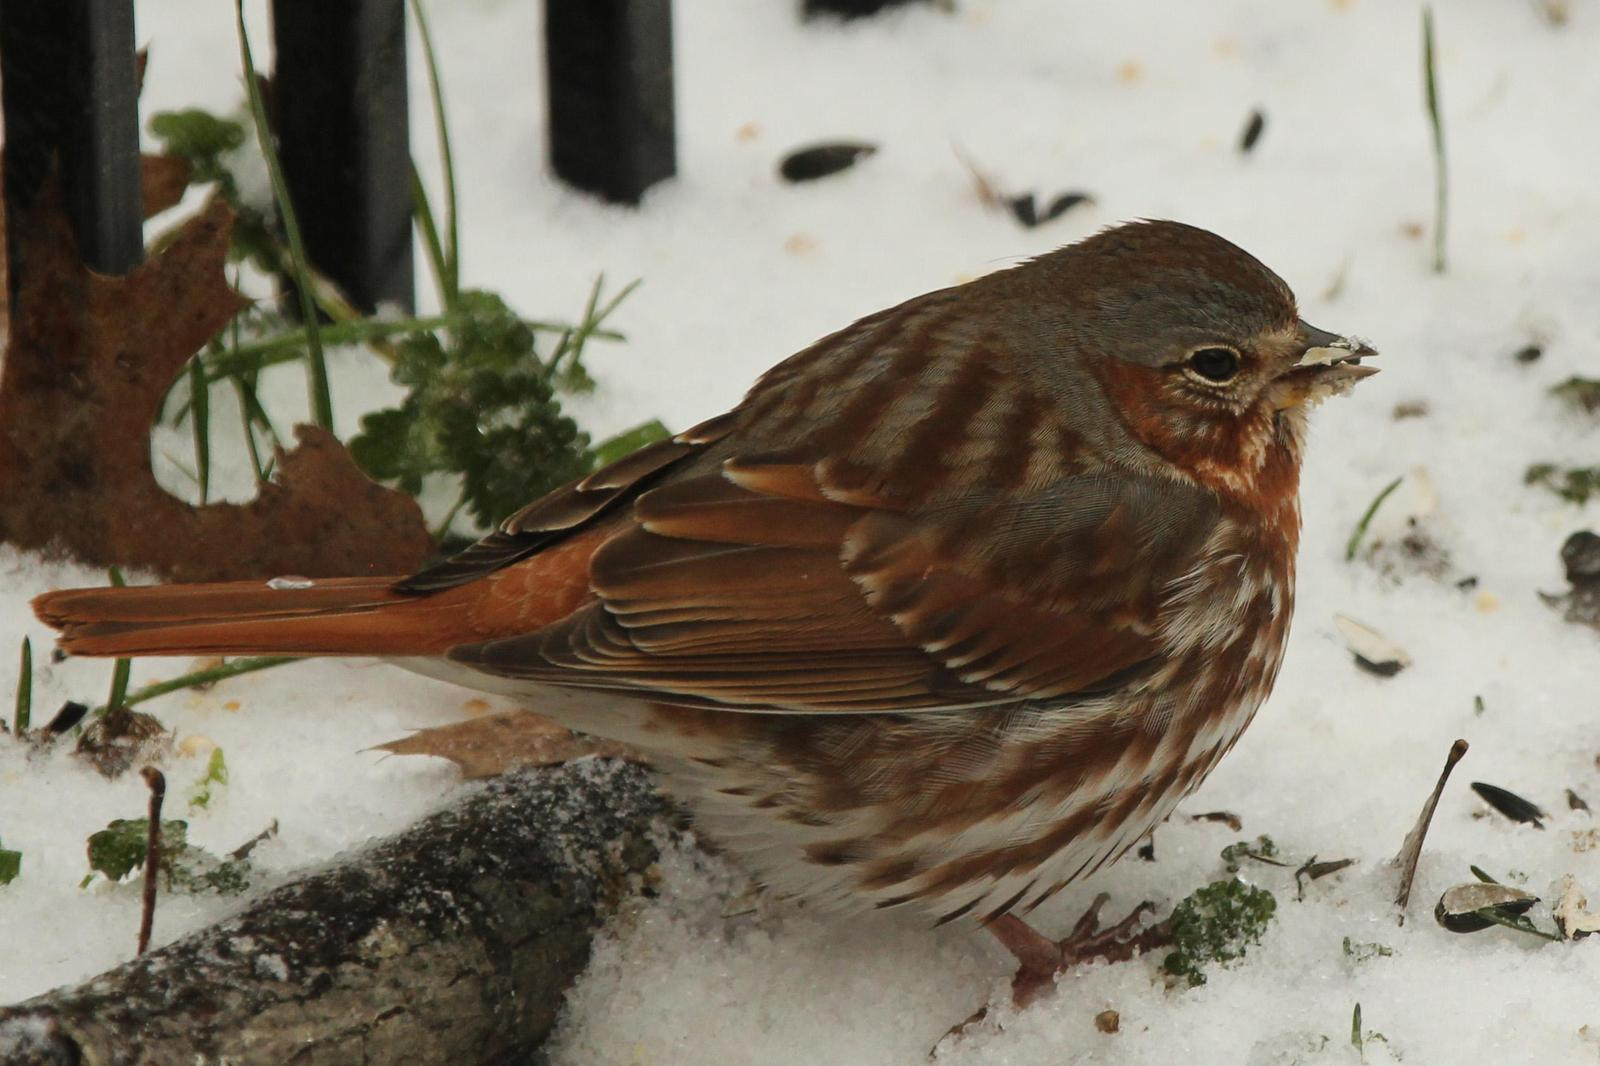 Fox Sparrow Photo by Kristy Baker